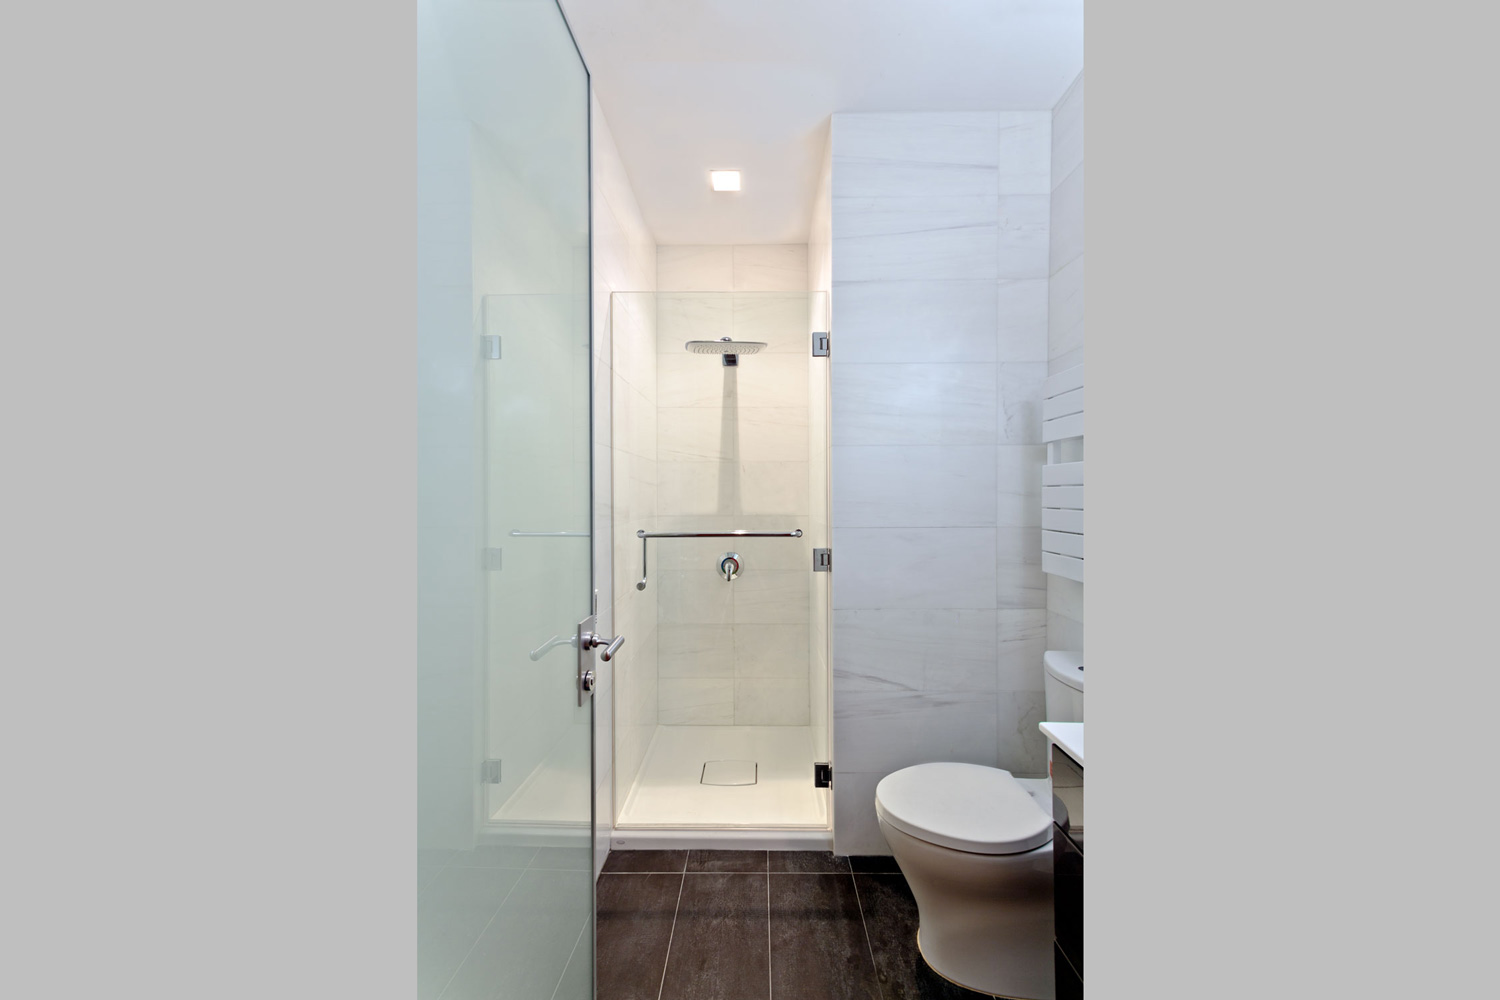 Modern bathrooms incorporate warmth with radiant heated floors, natural sand stone and heated towel warmers.